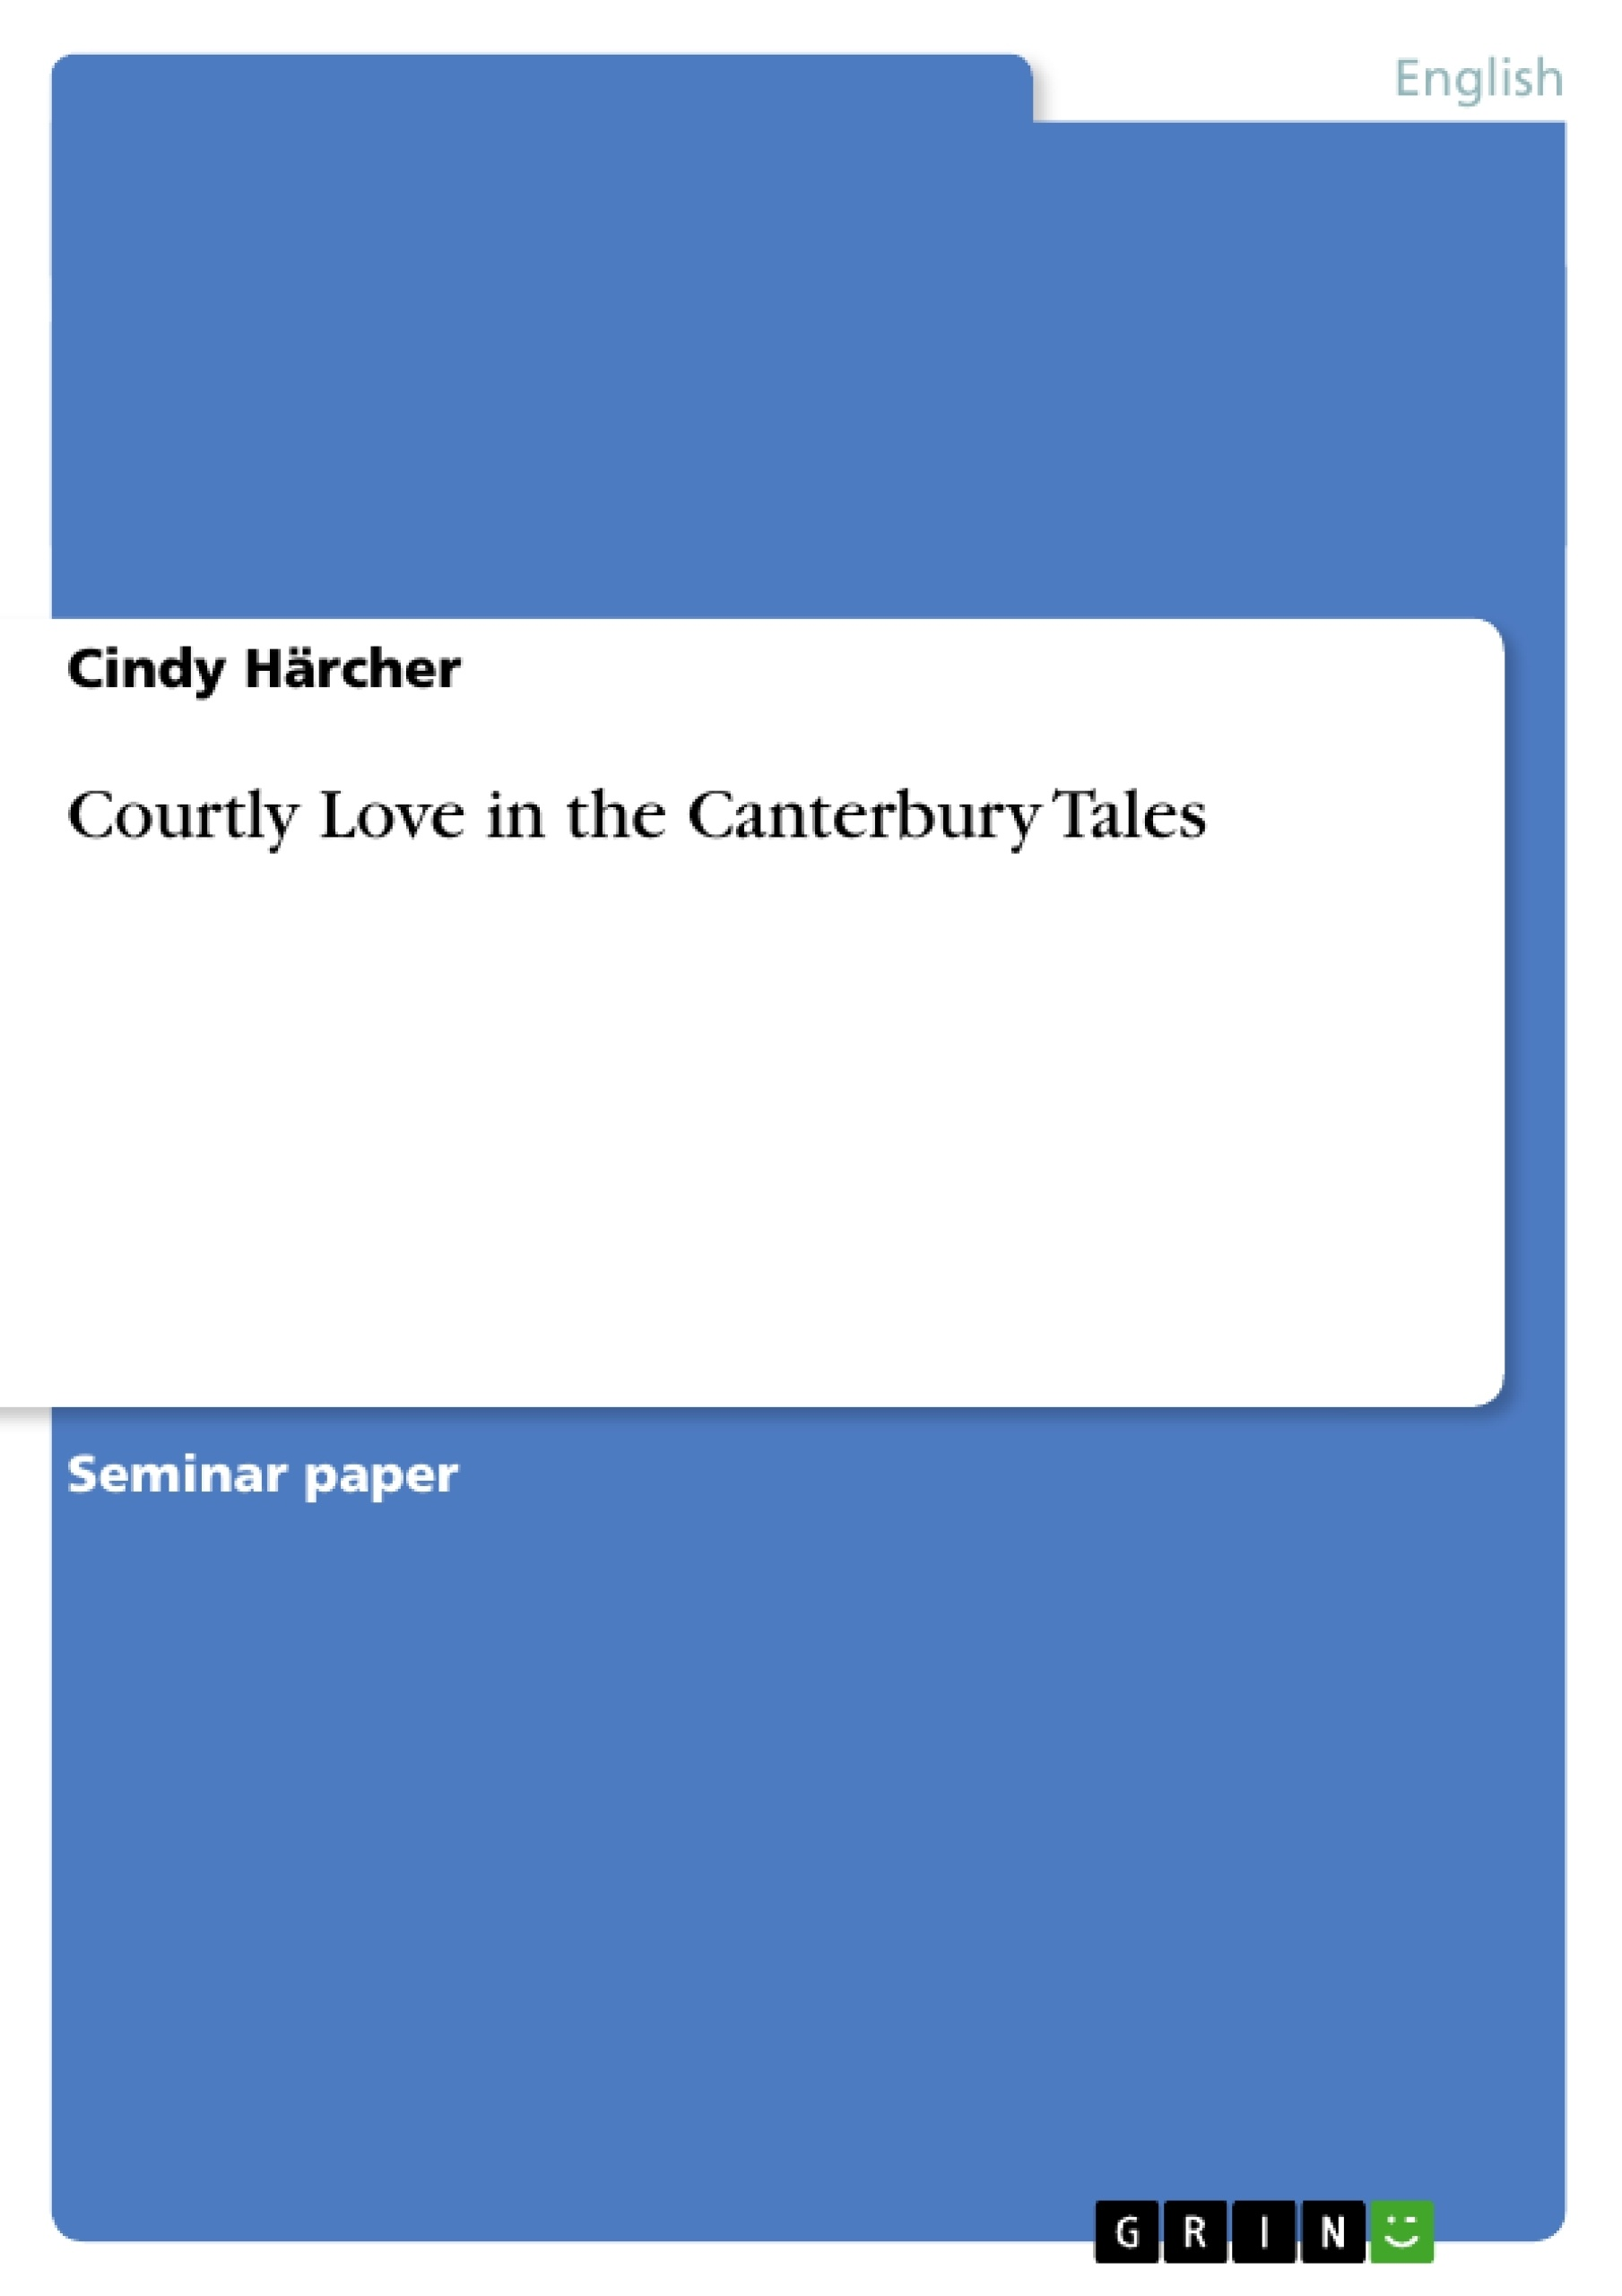 courtly love in the canterbury tales publish your master s courtly love in the canterbury tales publish your master s thesis bachelor s thesis essay or term paper